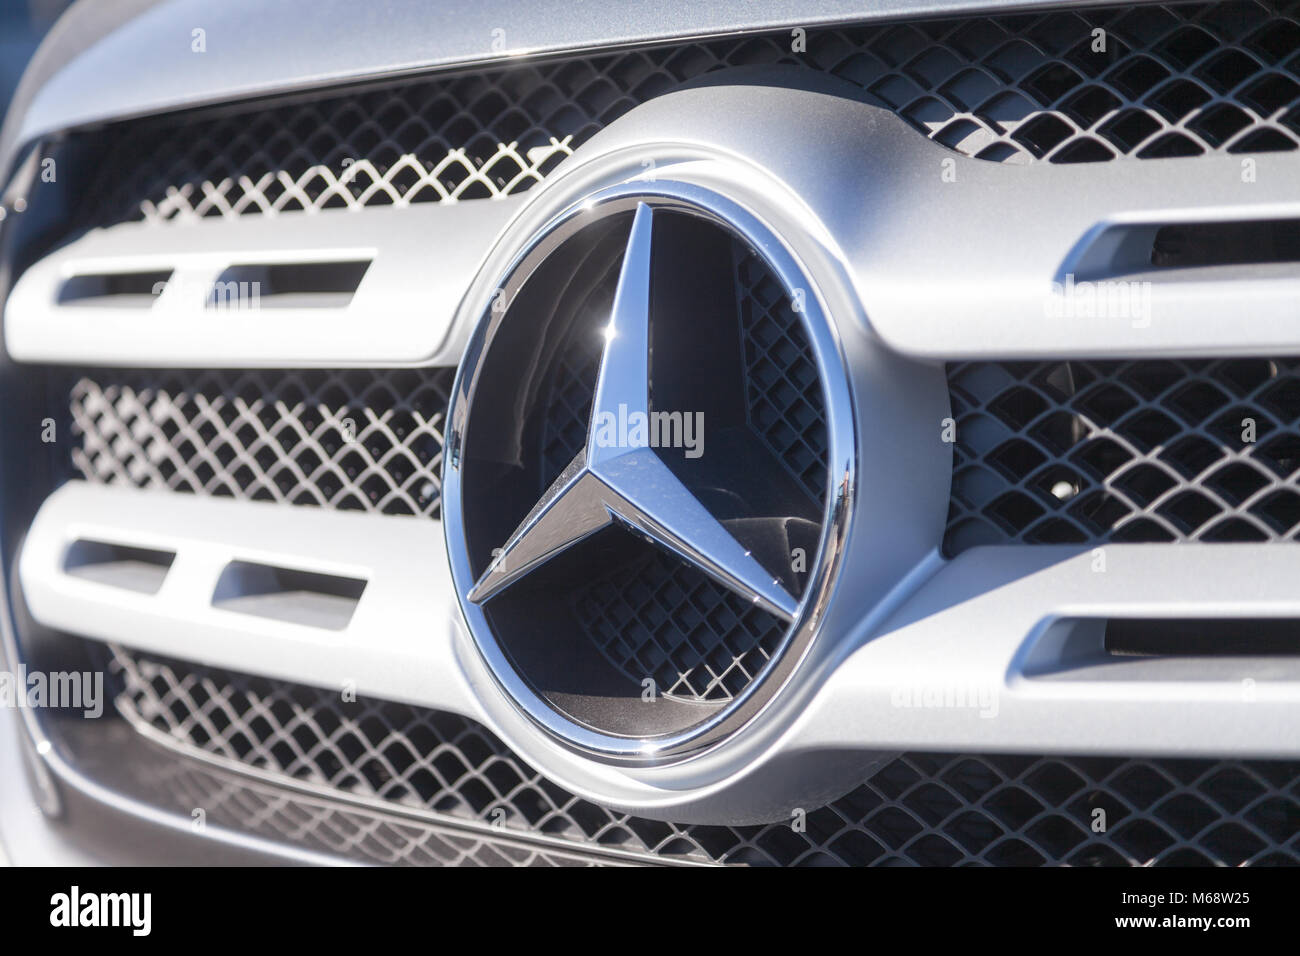 Fuerth germany february 25 2018 mercedes benz symbol on a fuerth germany february 25 2018 mercedes benz symbol on a car mercedes benz is a global automobile marque and a division of the german company biocorpaavc Image collections